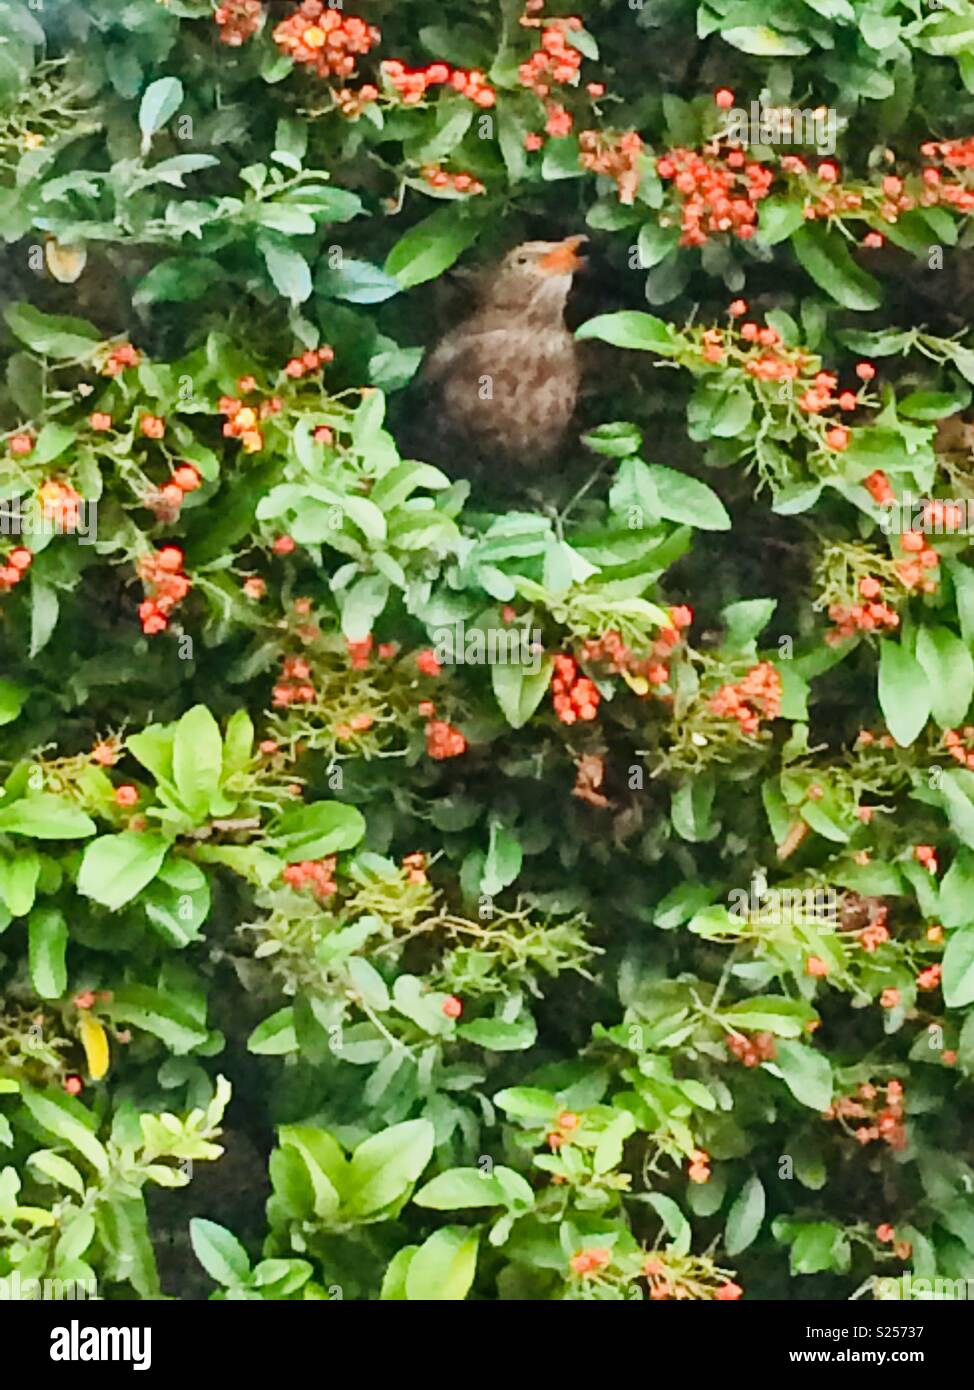 Bird eating a berry in the bush - Stock Image